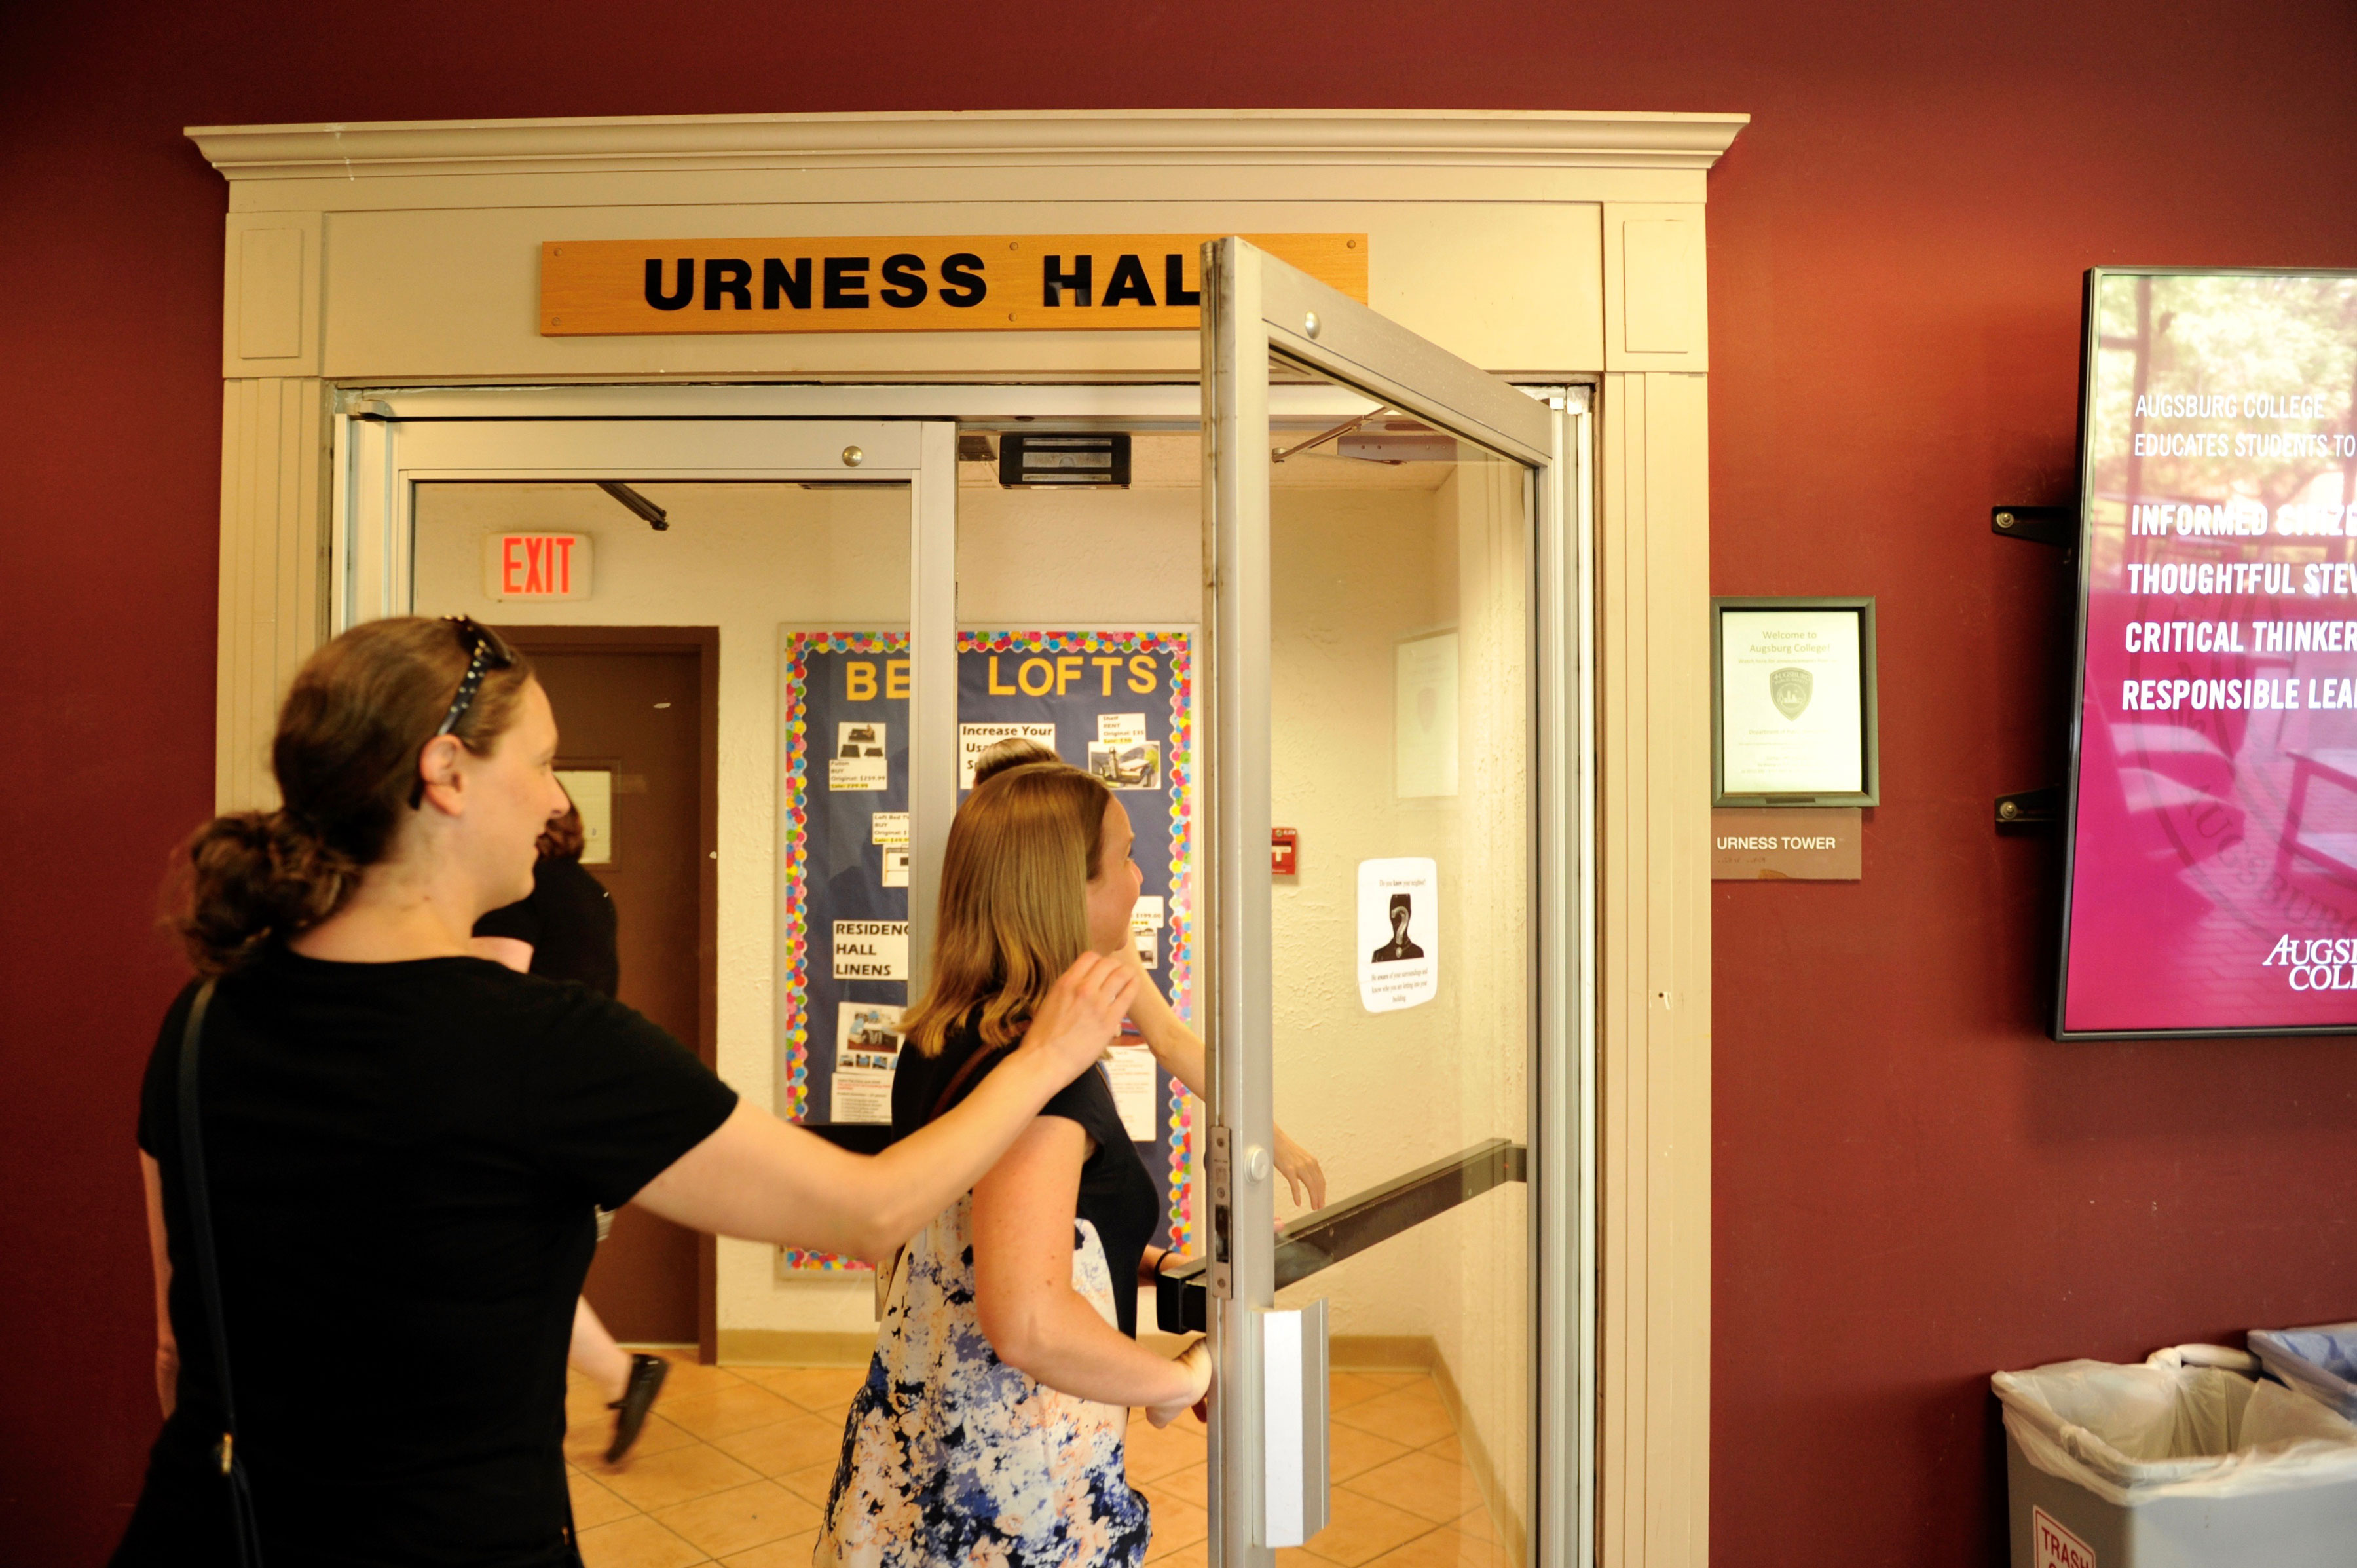 Entering Urness Hall - home to so many memories.